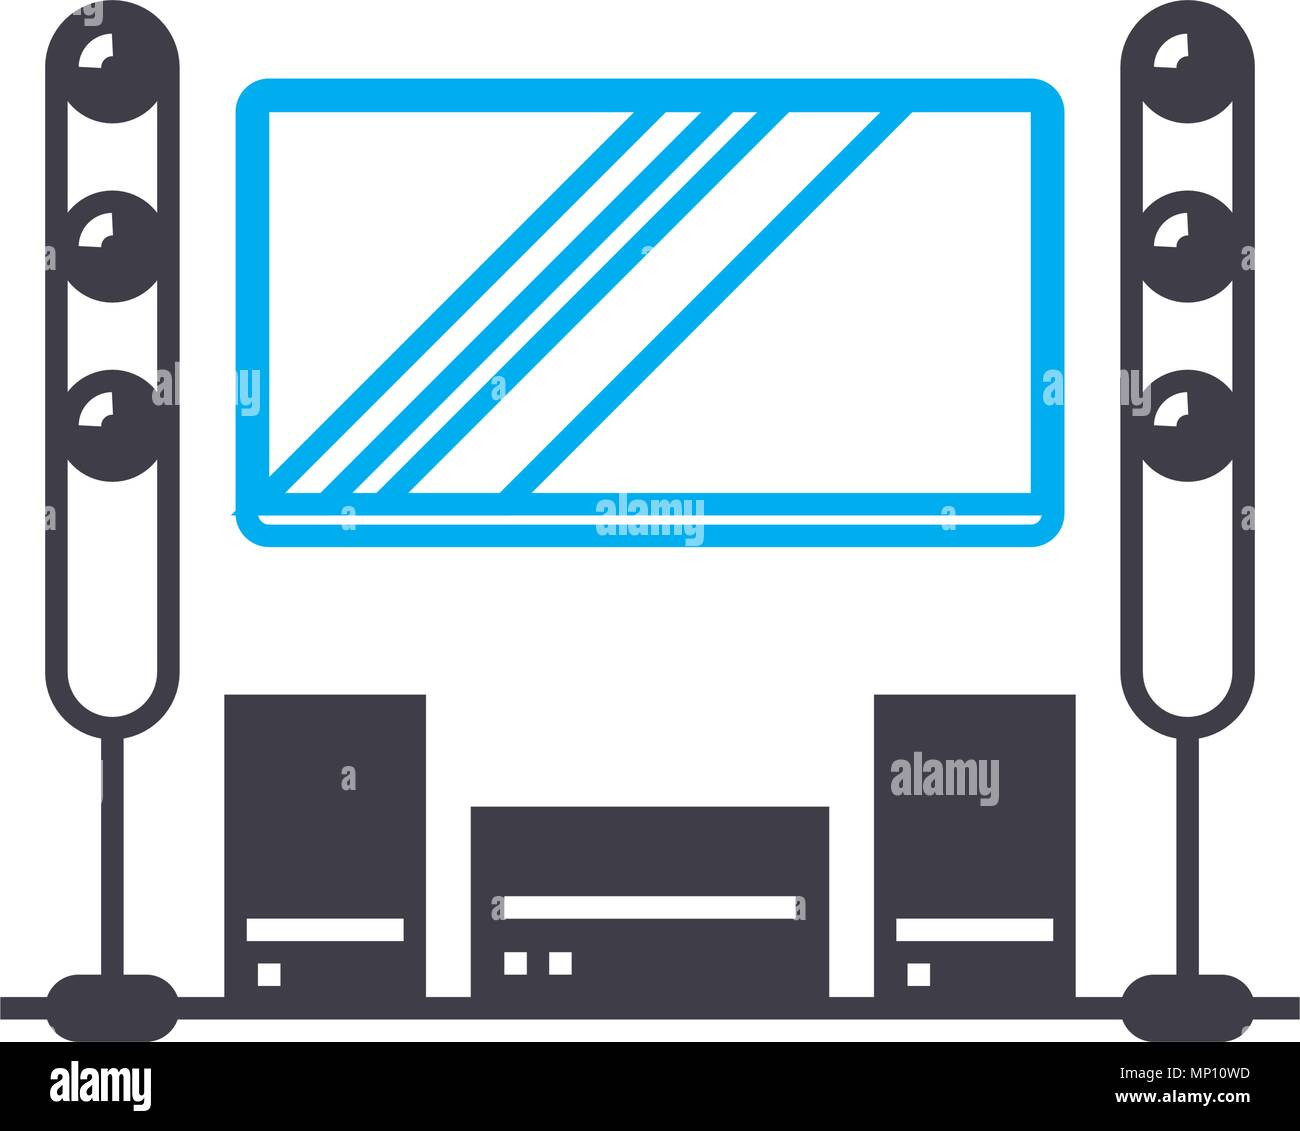 Home Movie Theater Stock Vector Images - Alamy